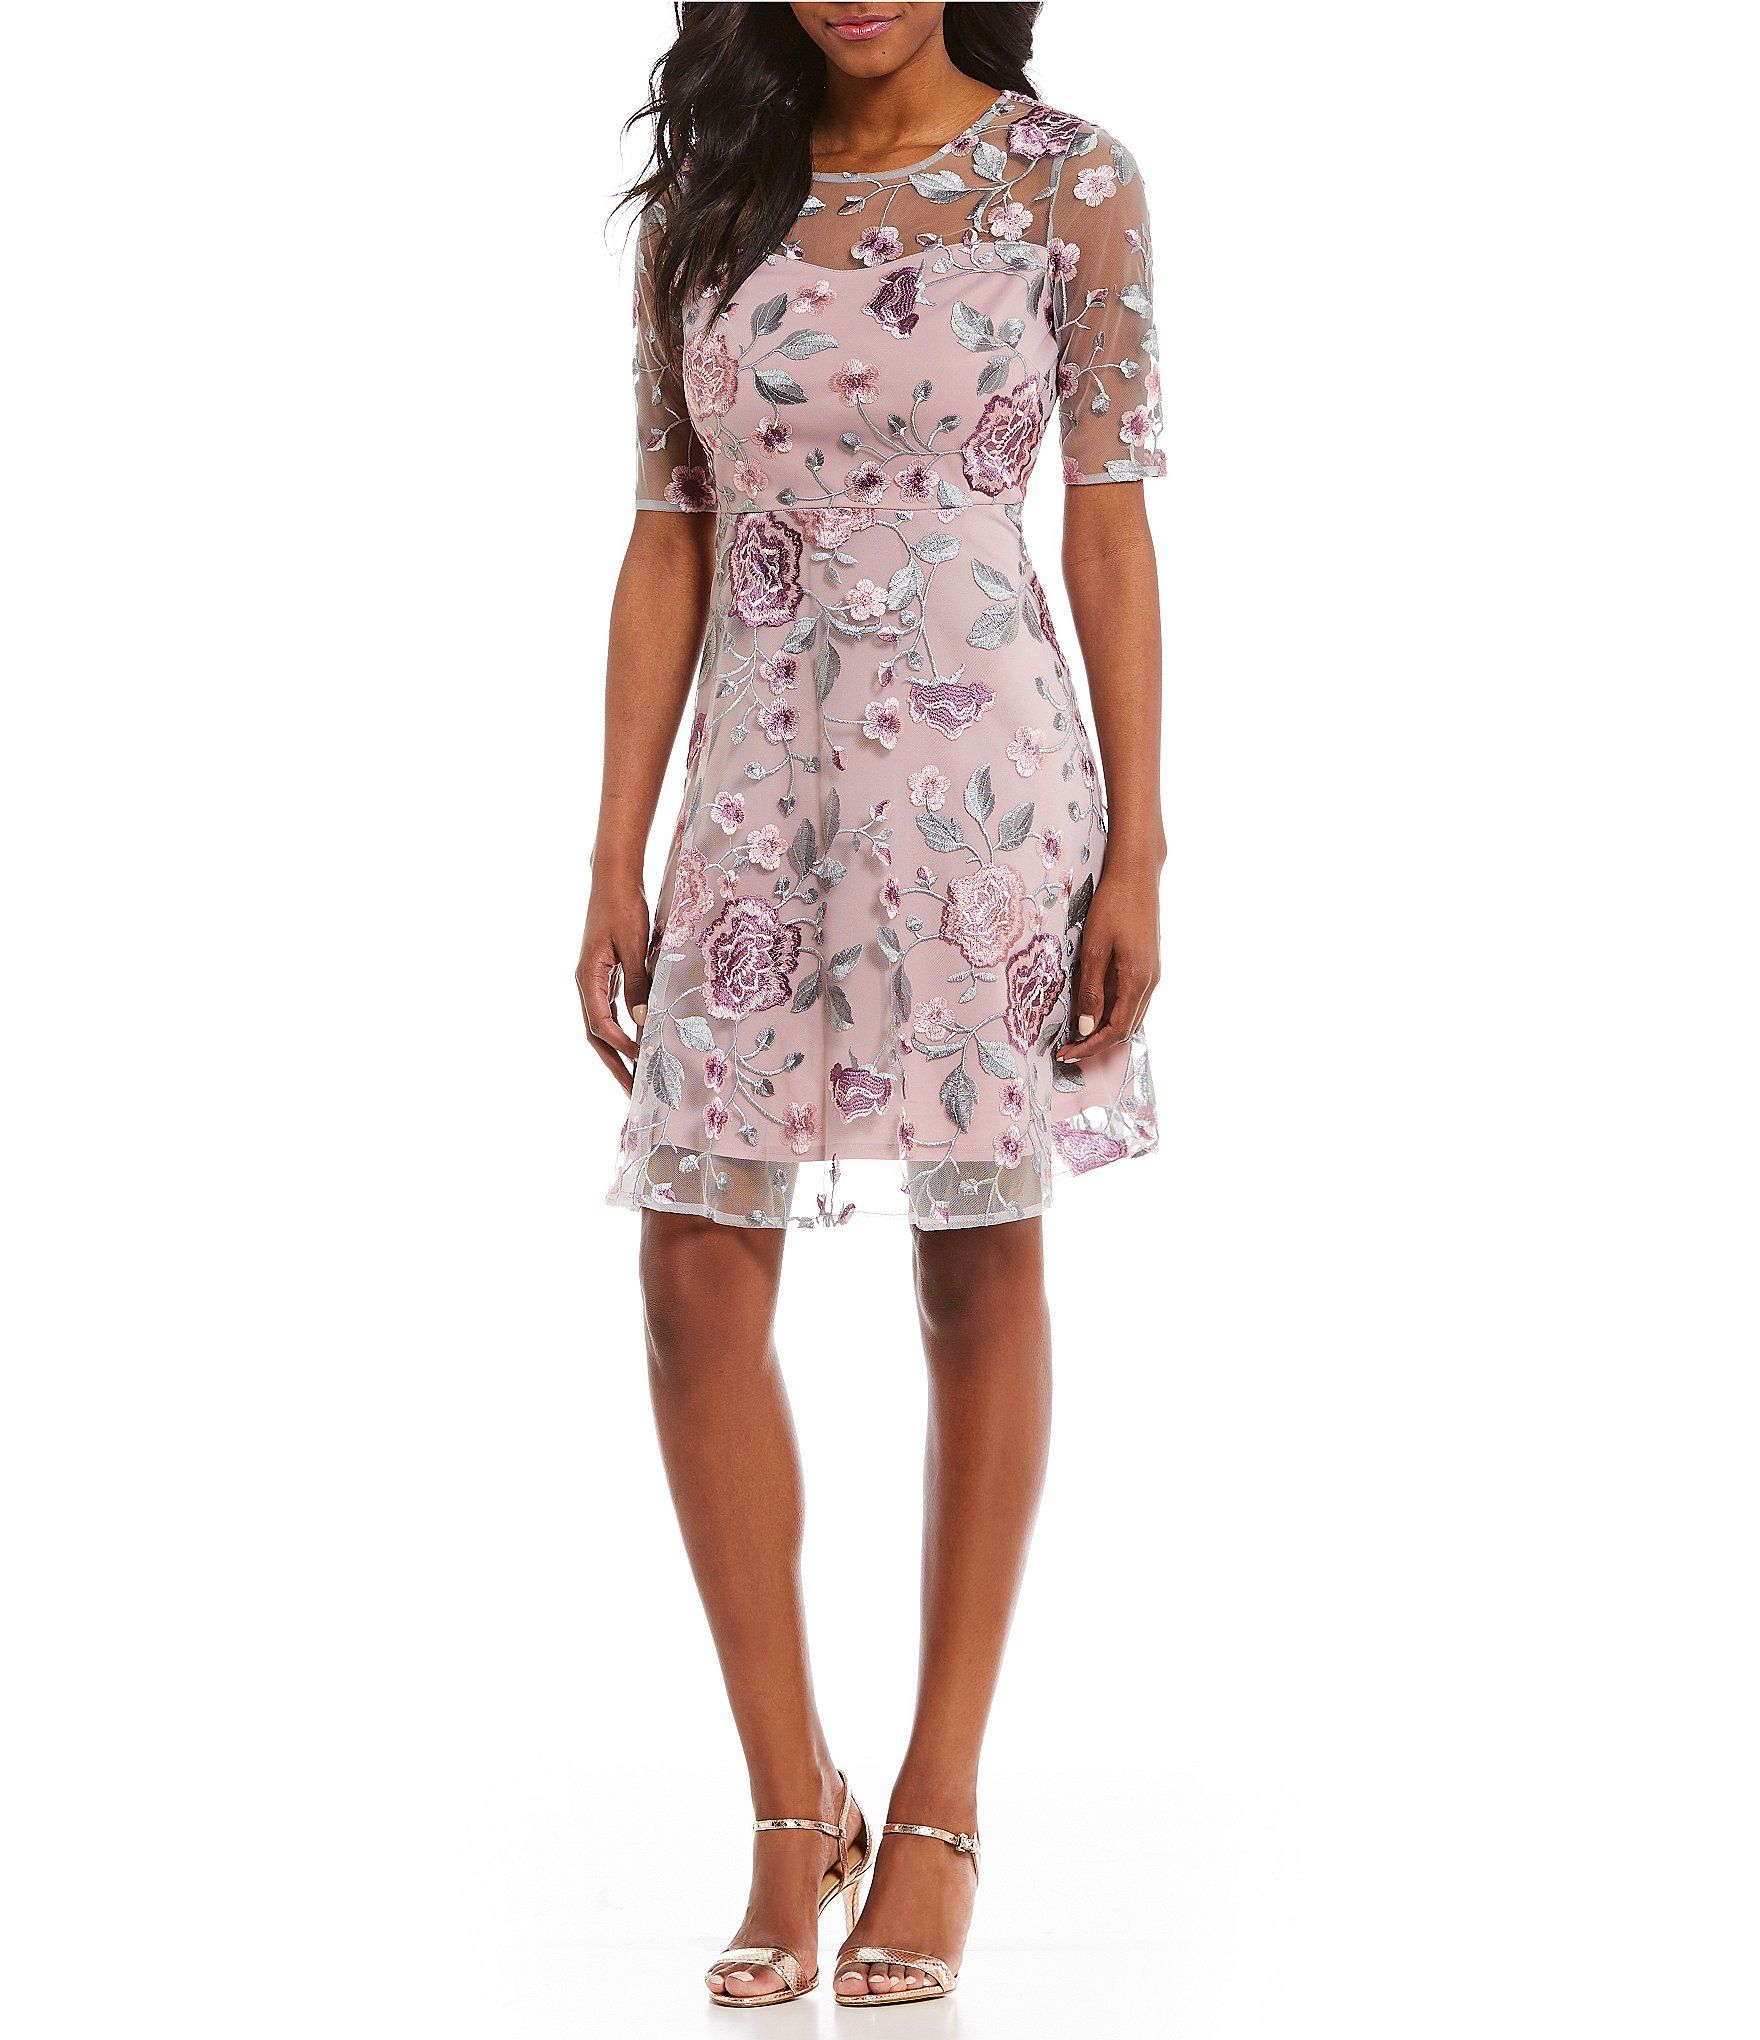 fdaa3dc29c4f Shop for Jax Floral Embroidered A-line Dress at Dillards.com. Visit Dillards.com  to find clothing, accessories, shoes, cosmetics & more.